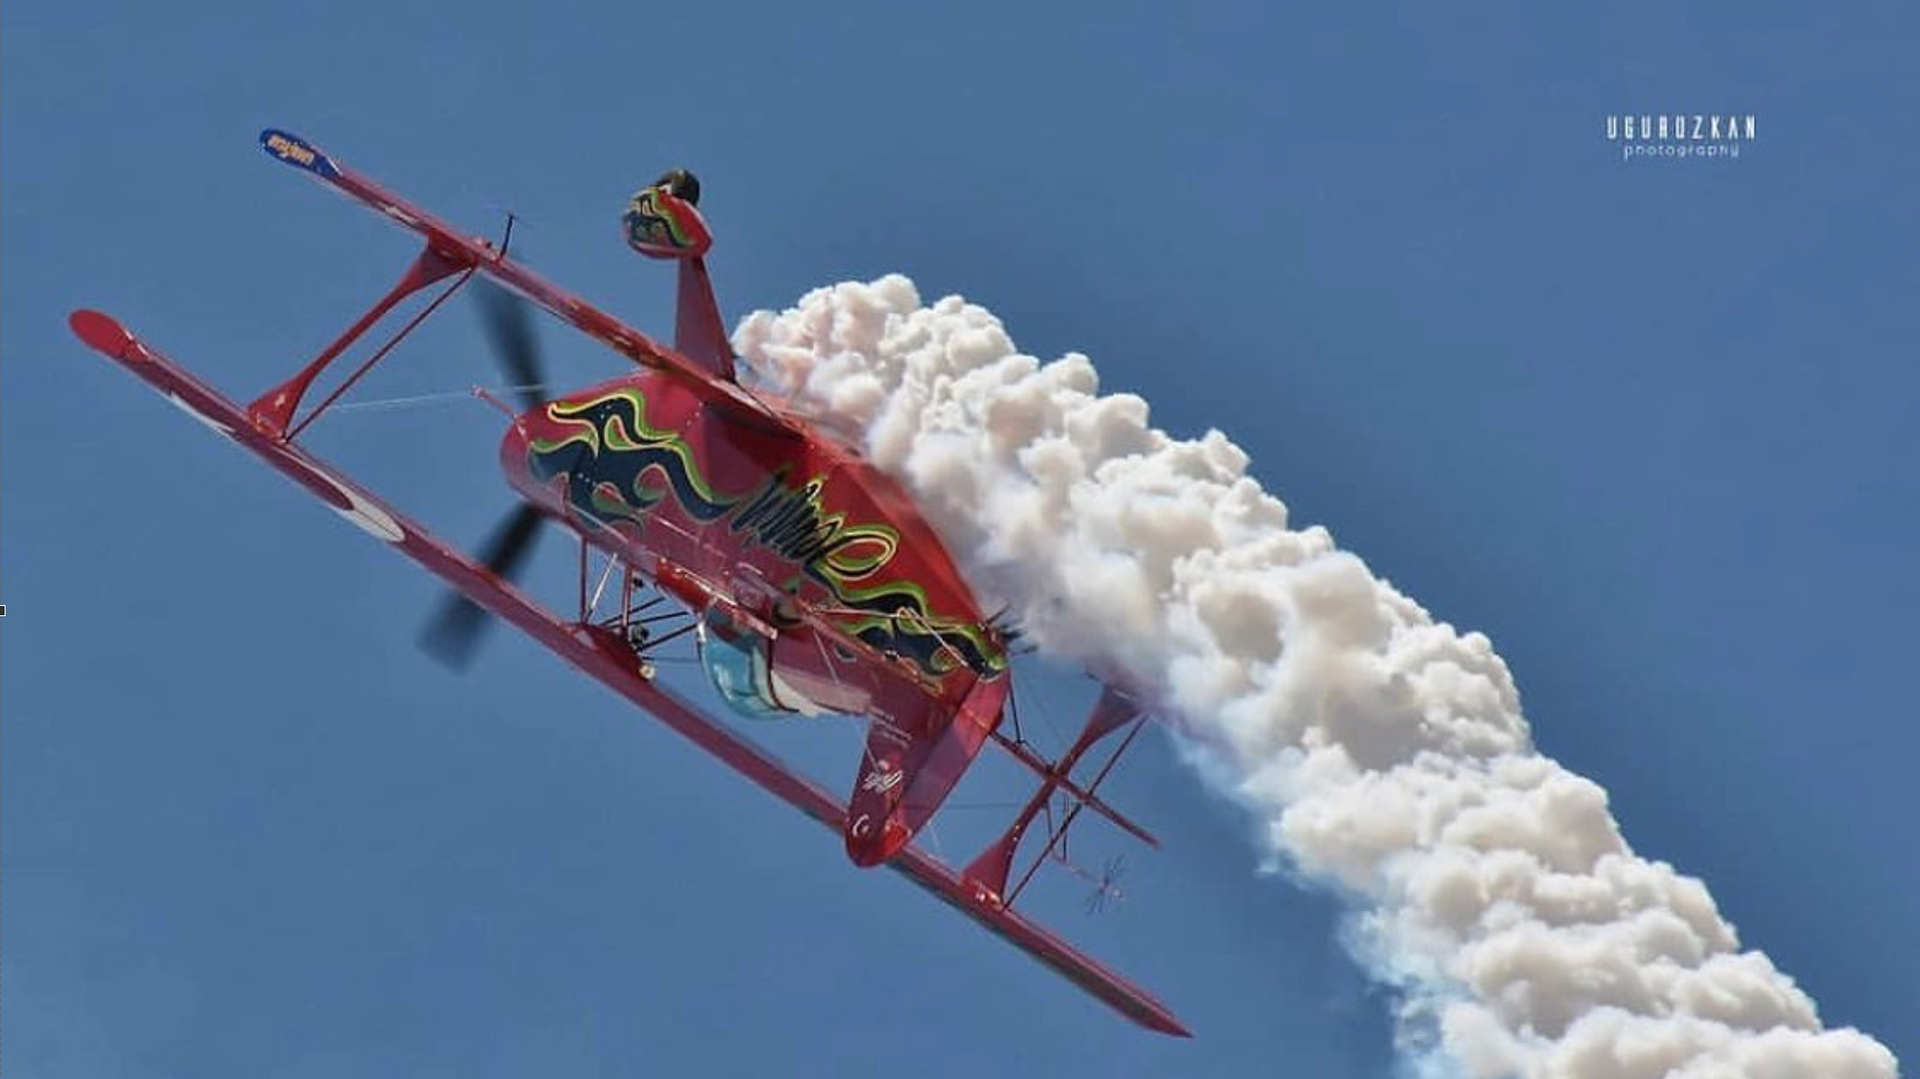 Pitts S2-B